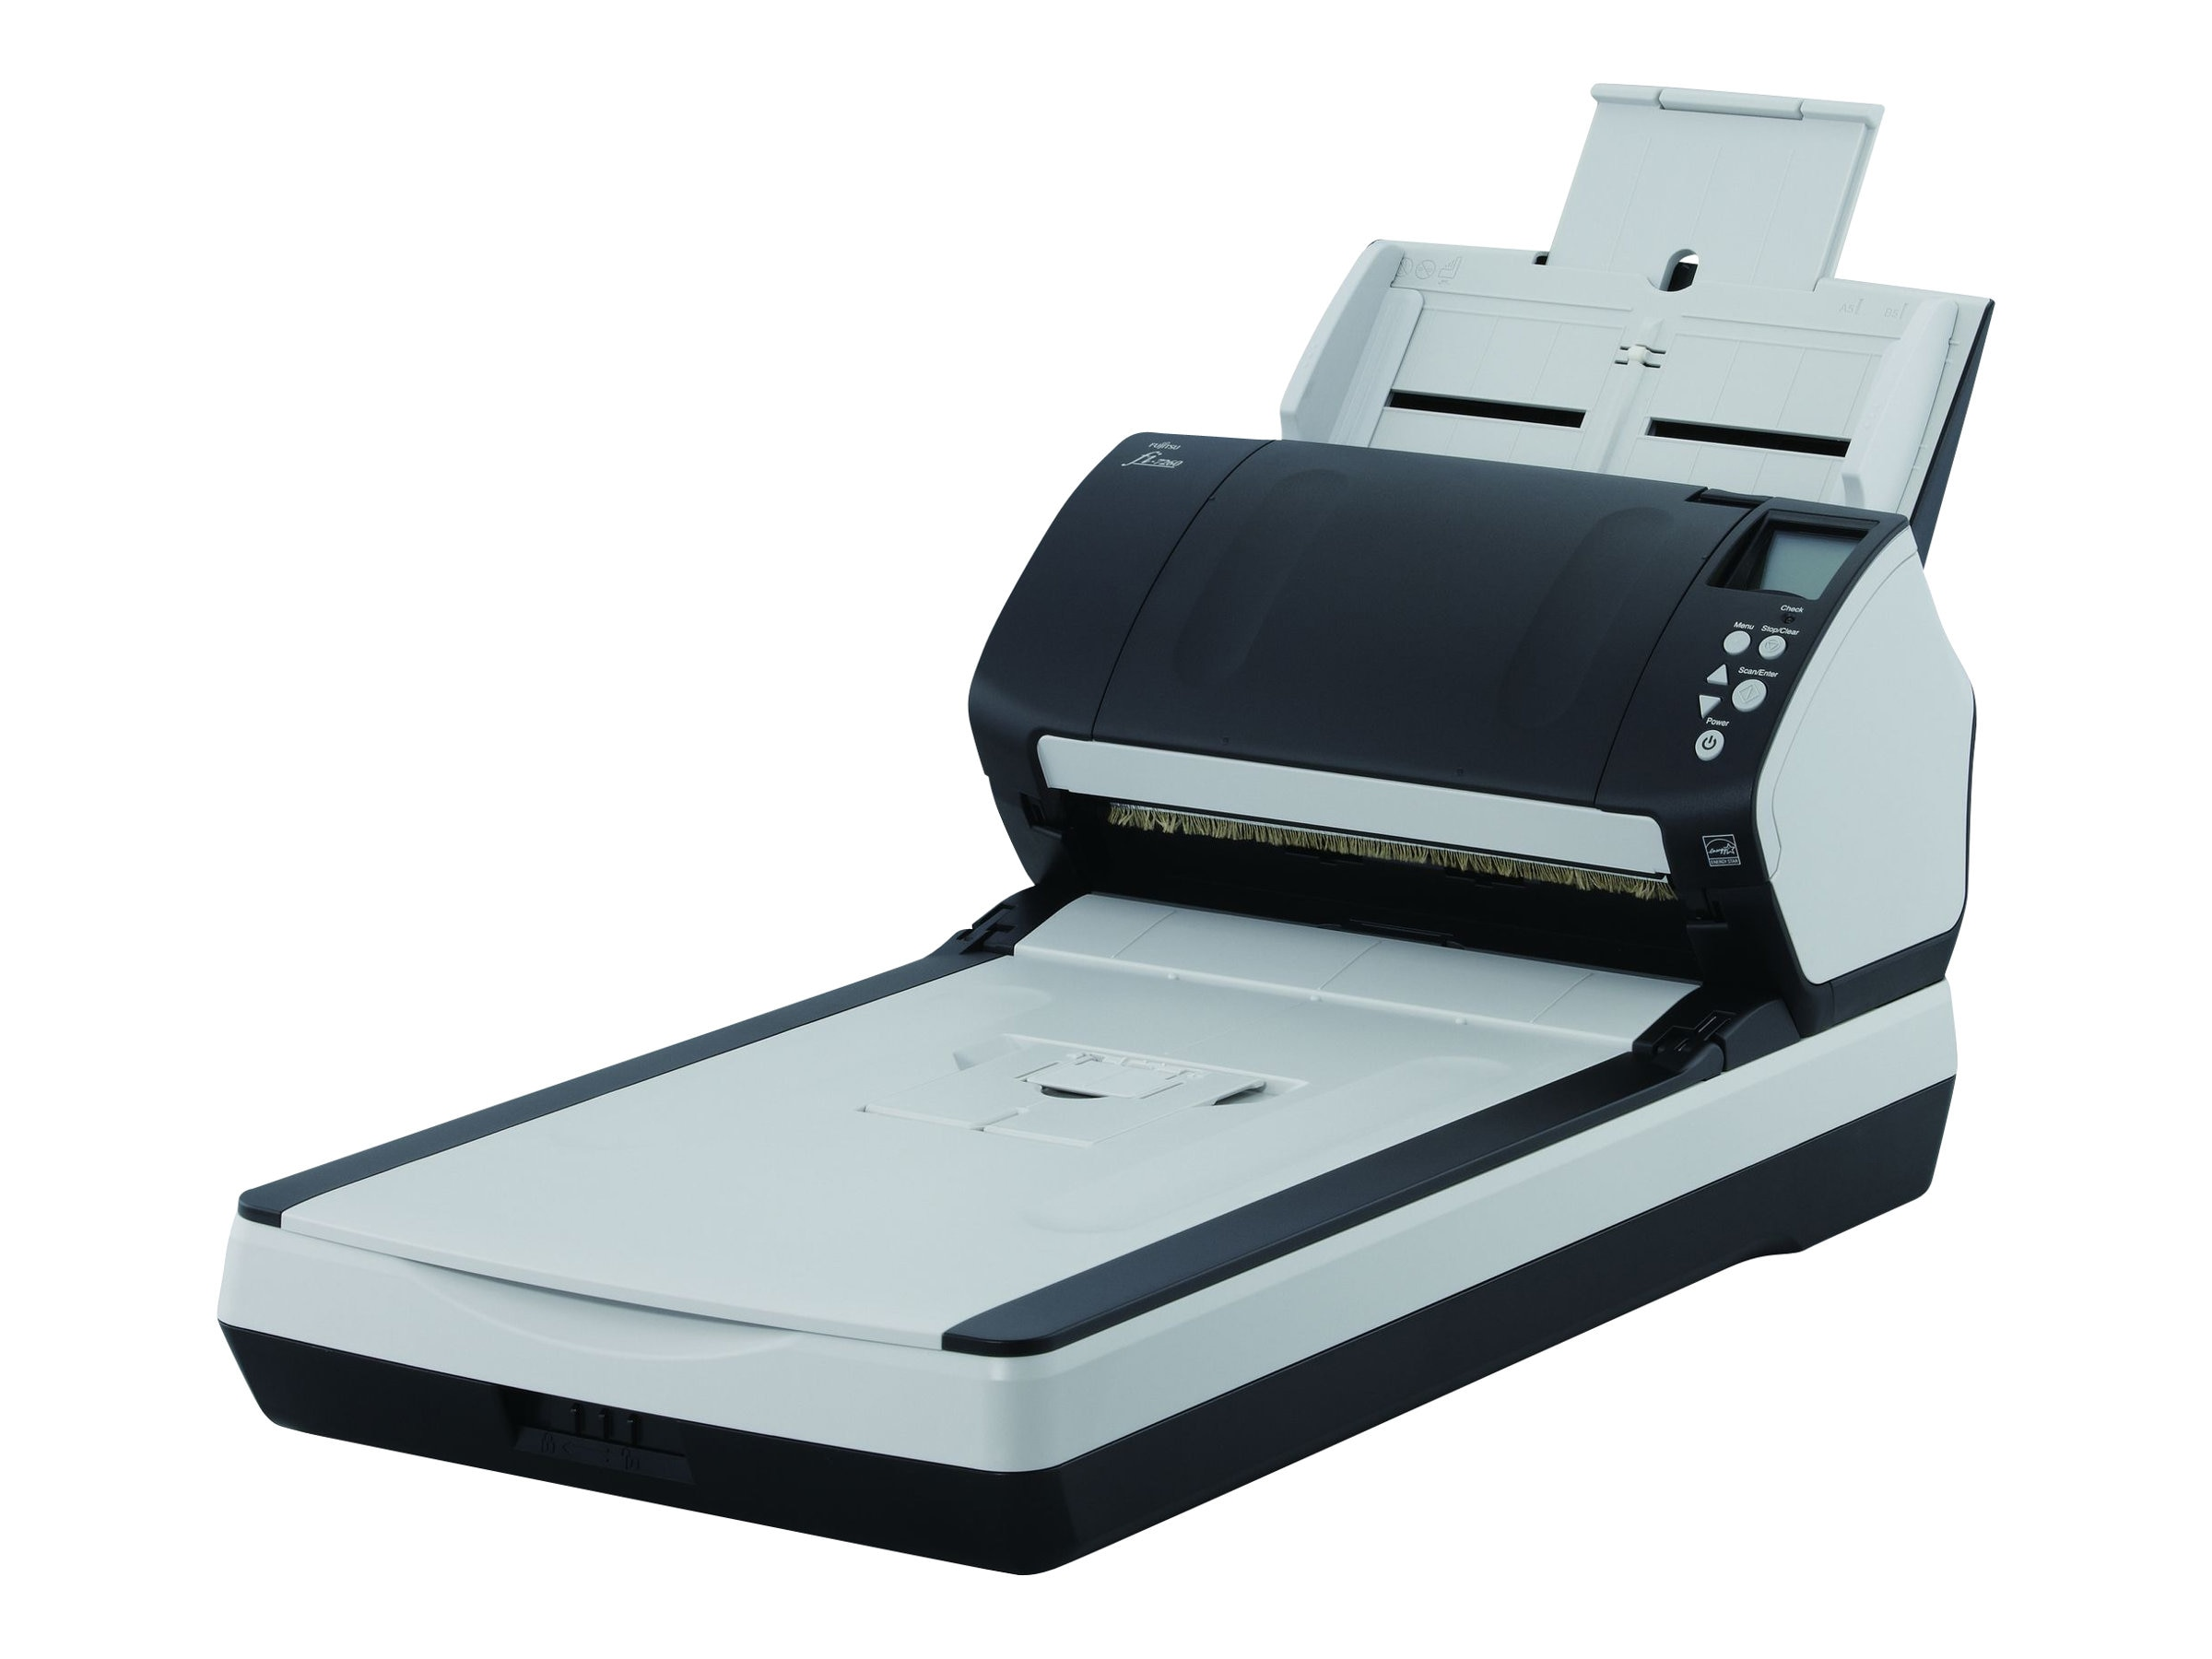 Fujitsu FI-7280 Color Duplex Sheetfed Scanner (replaces fi-6240z)